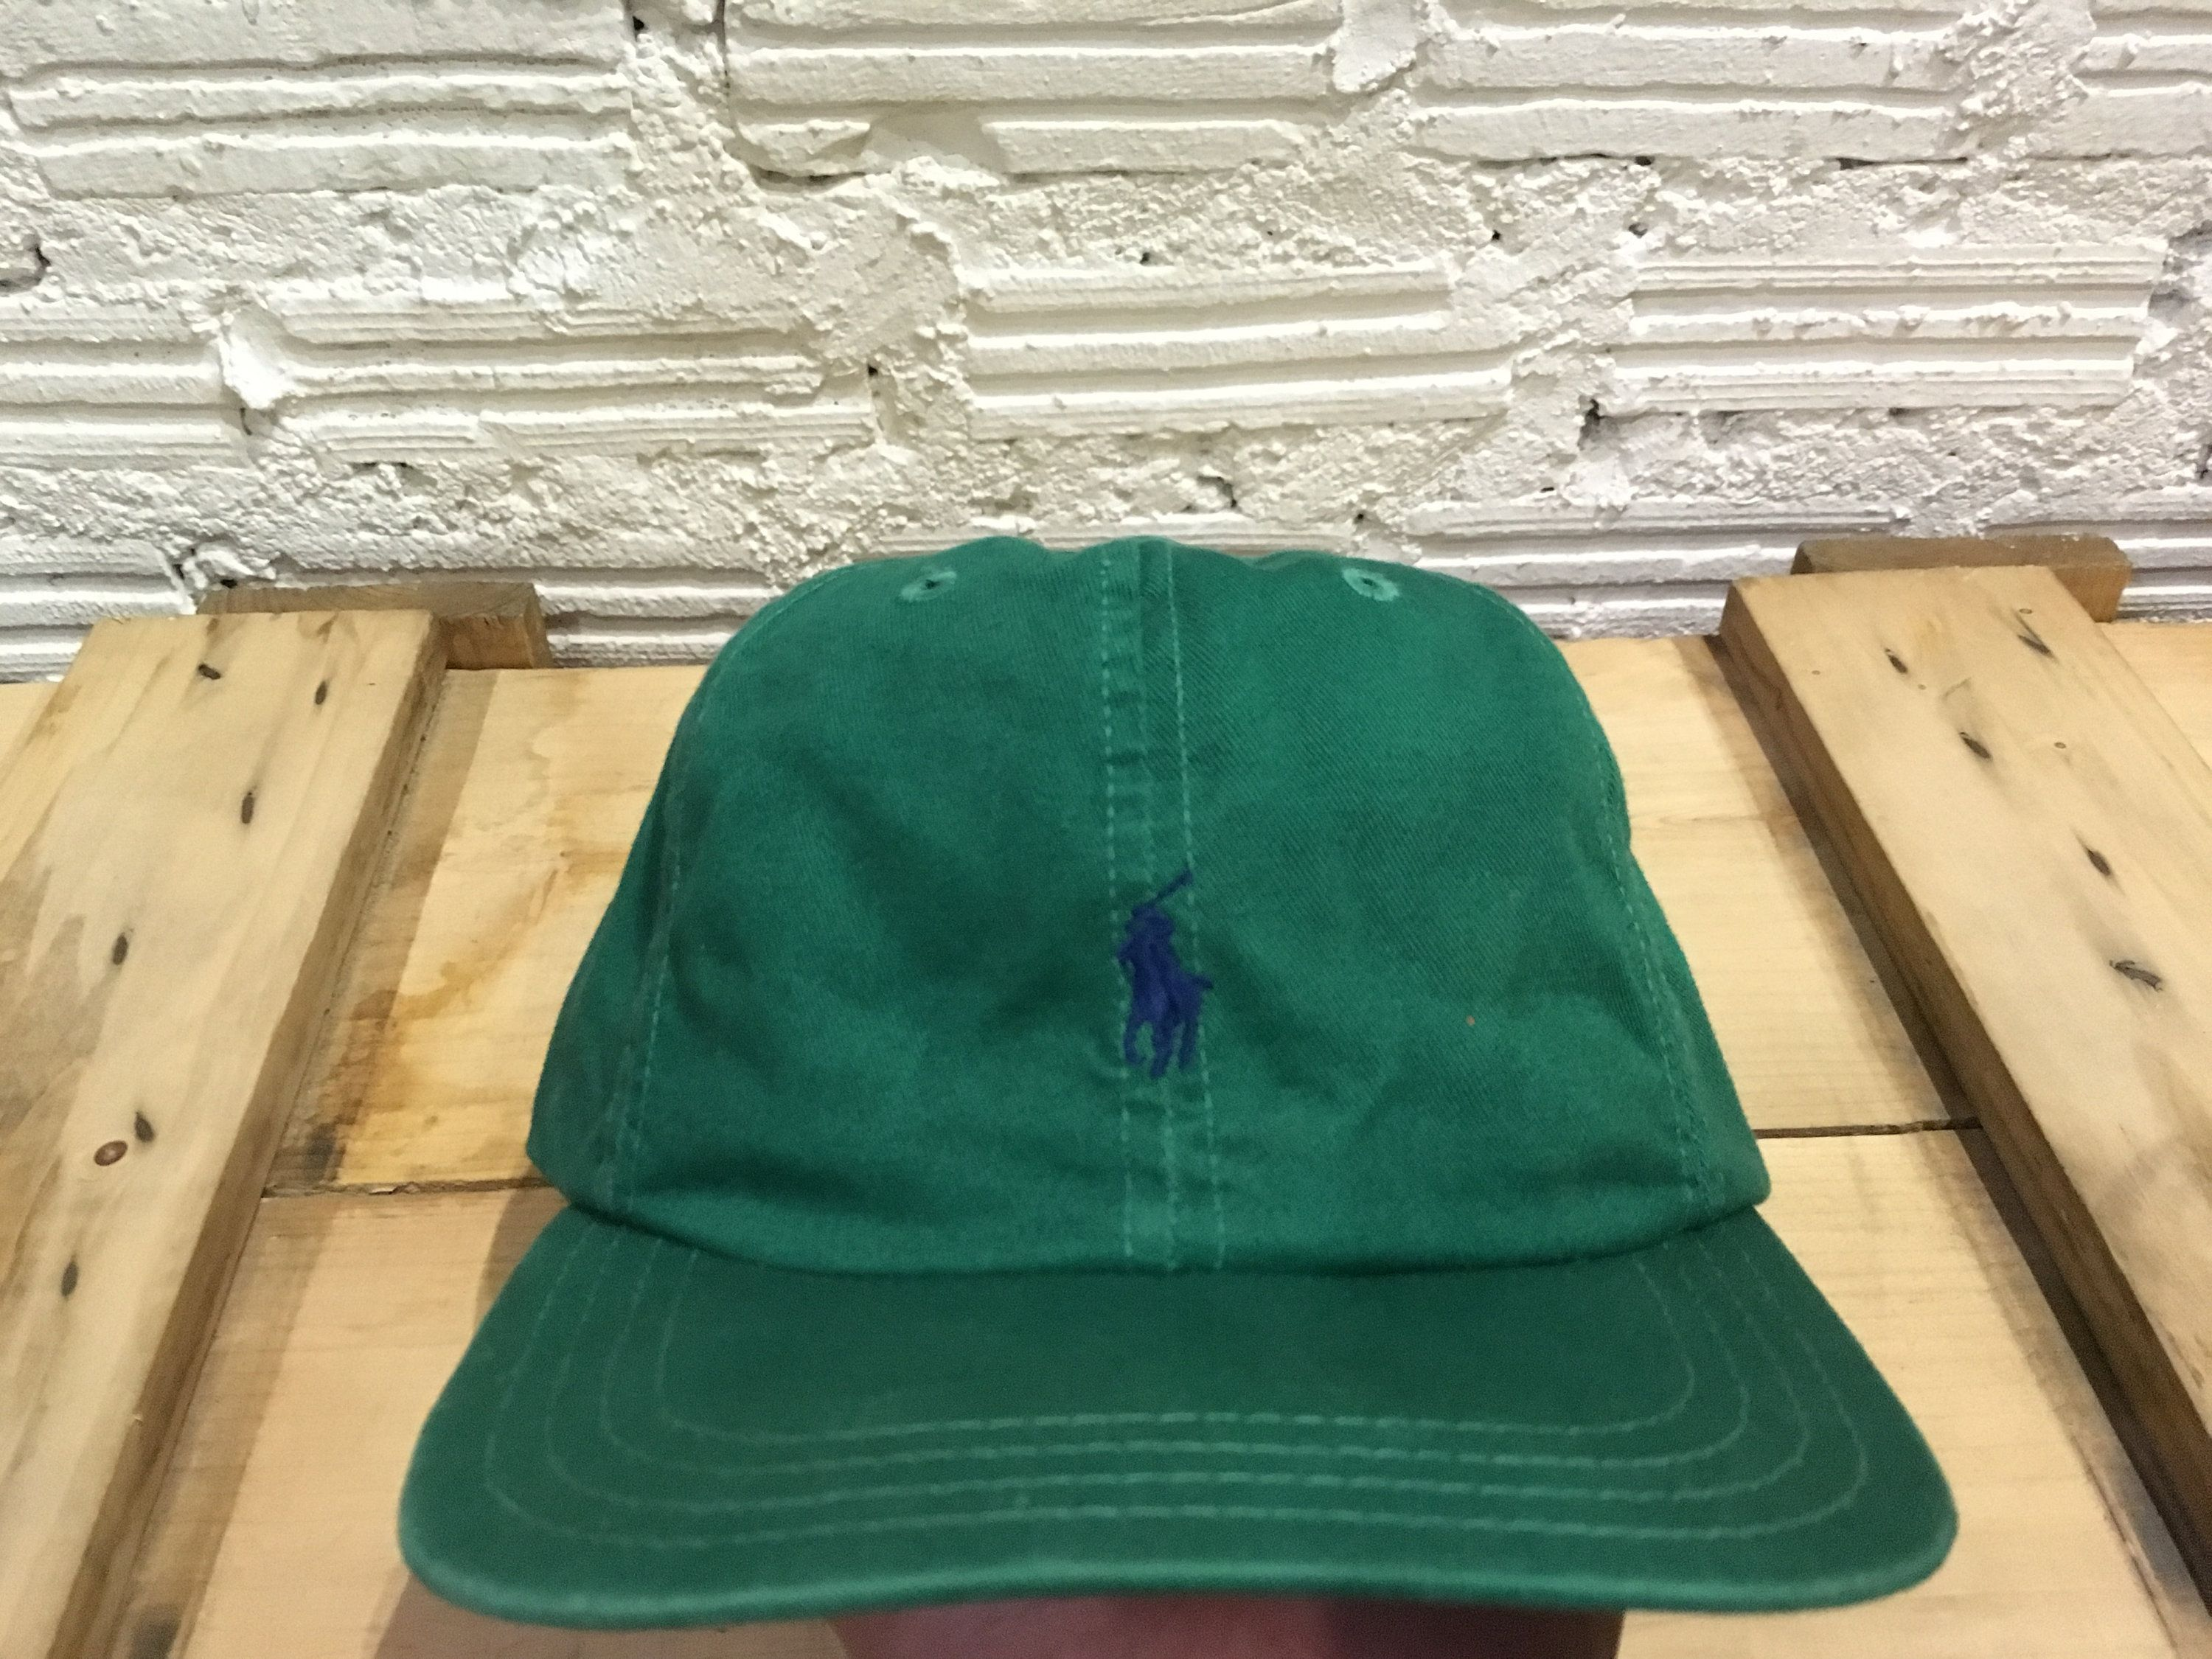 222c073a4b7da Vintage Polo ralph lauren cap small pony adjustable cap strapback Green Good  condition Made in usa by AlivevintageShop on Etsy